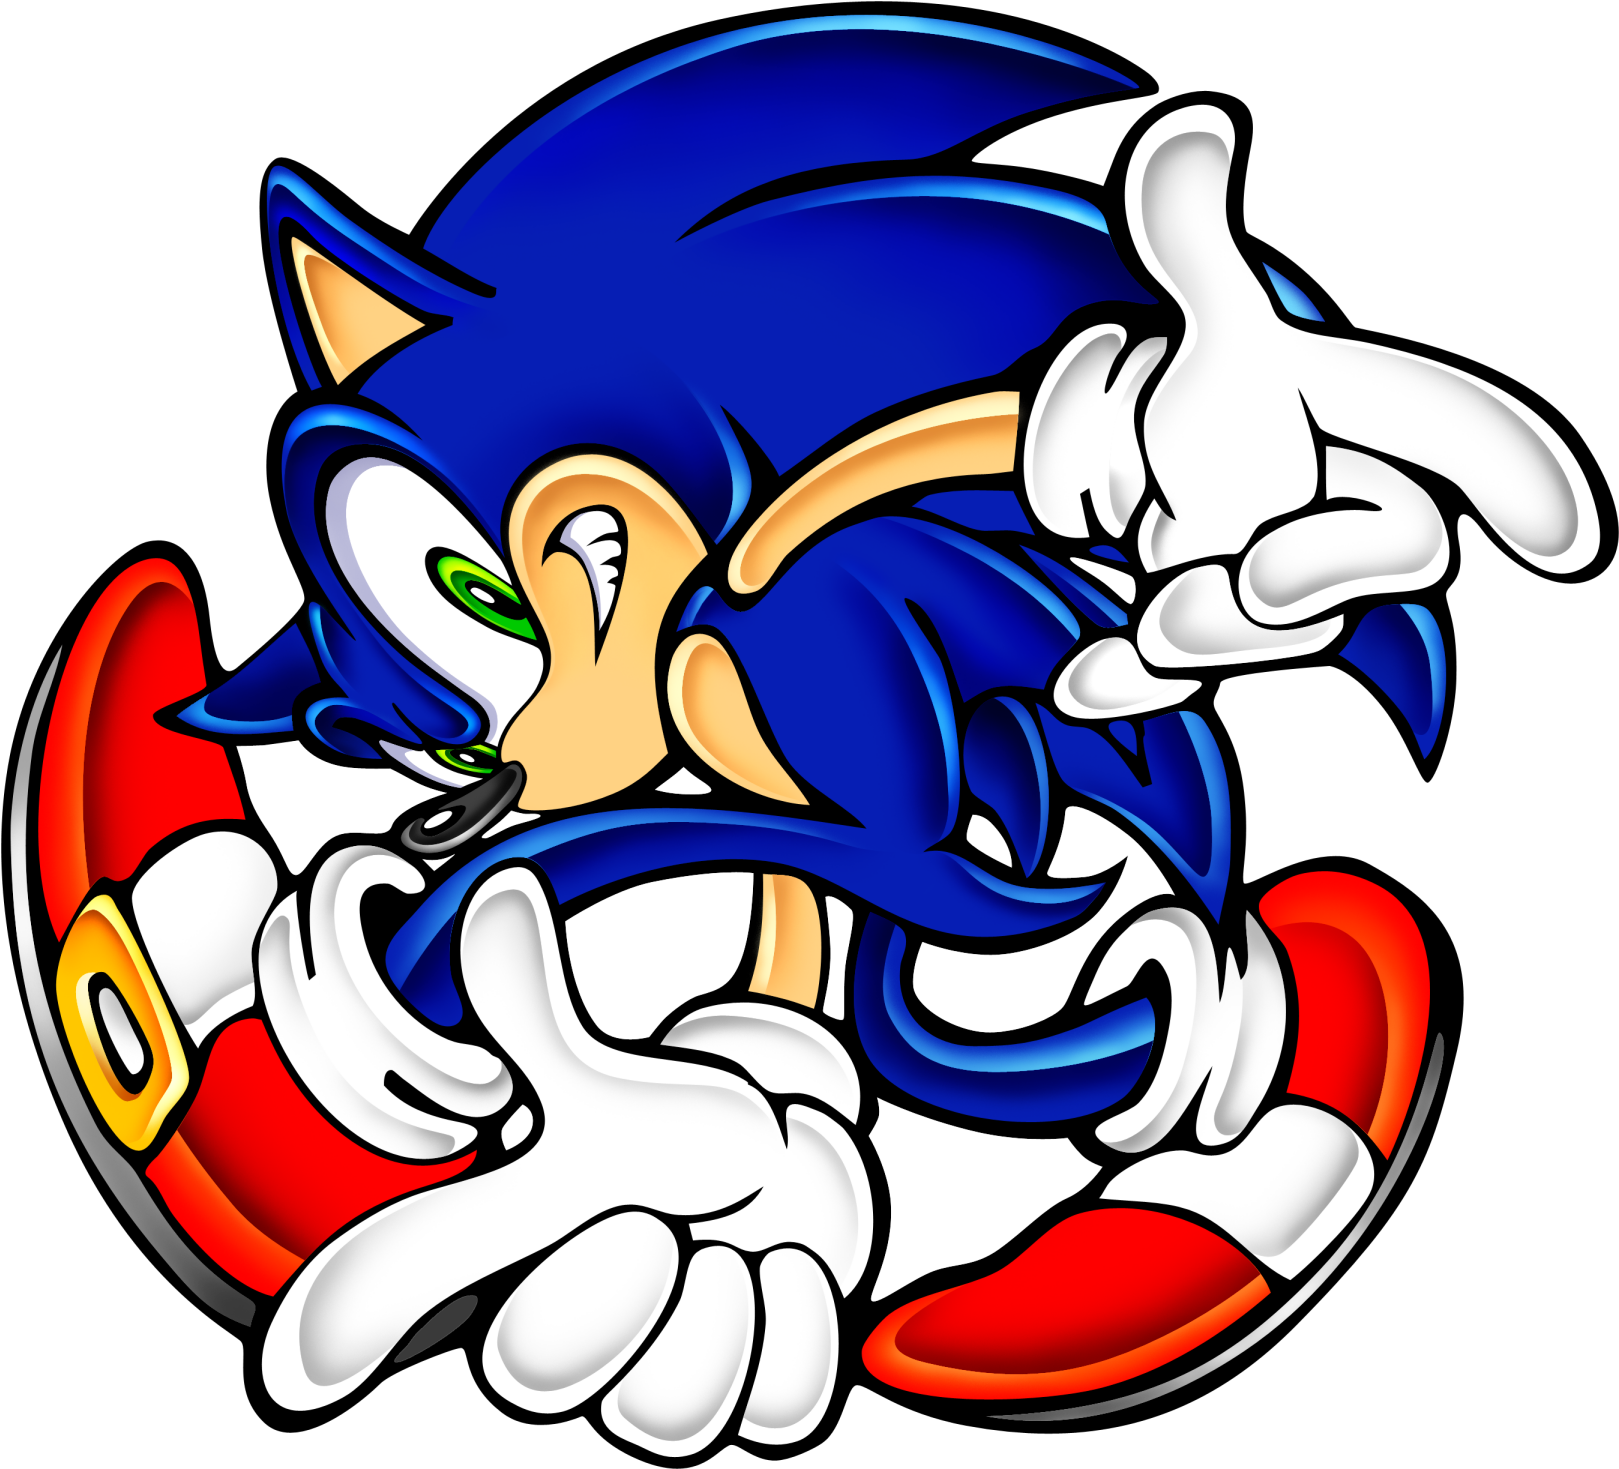 Sonic_Adventure__image1619x1469.png